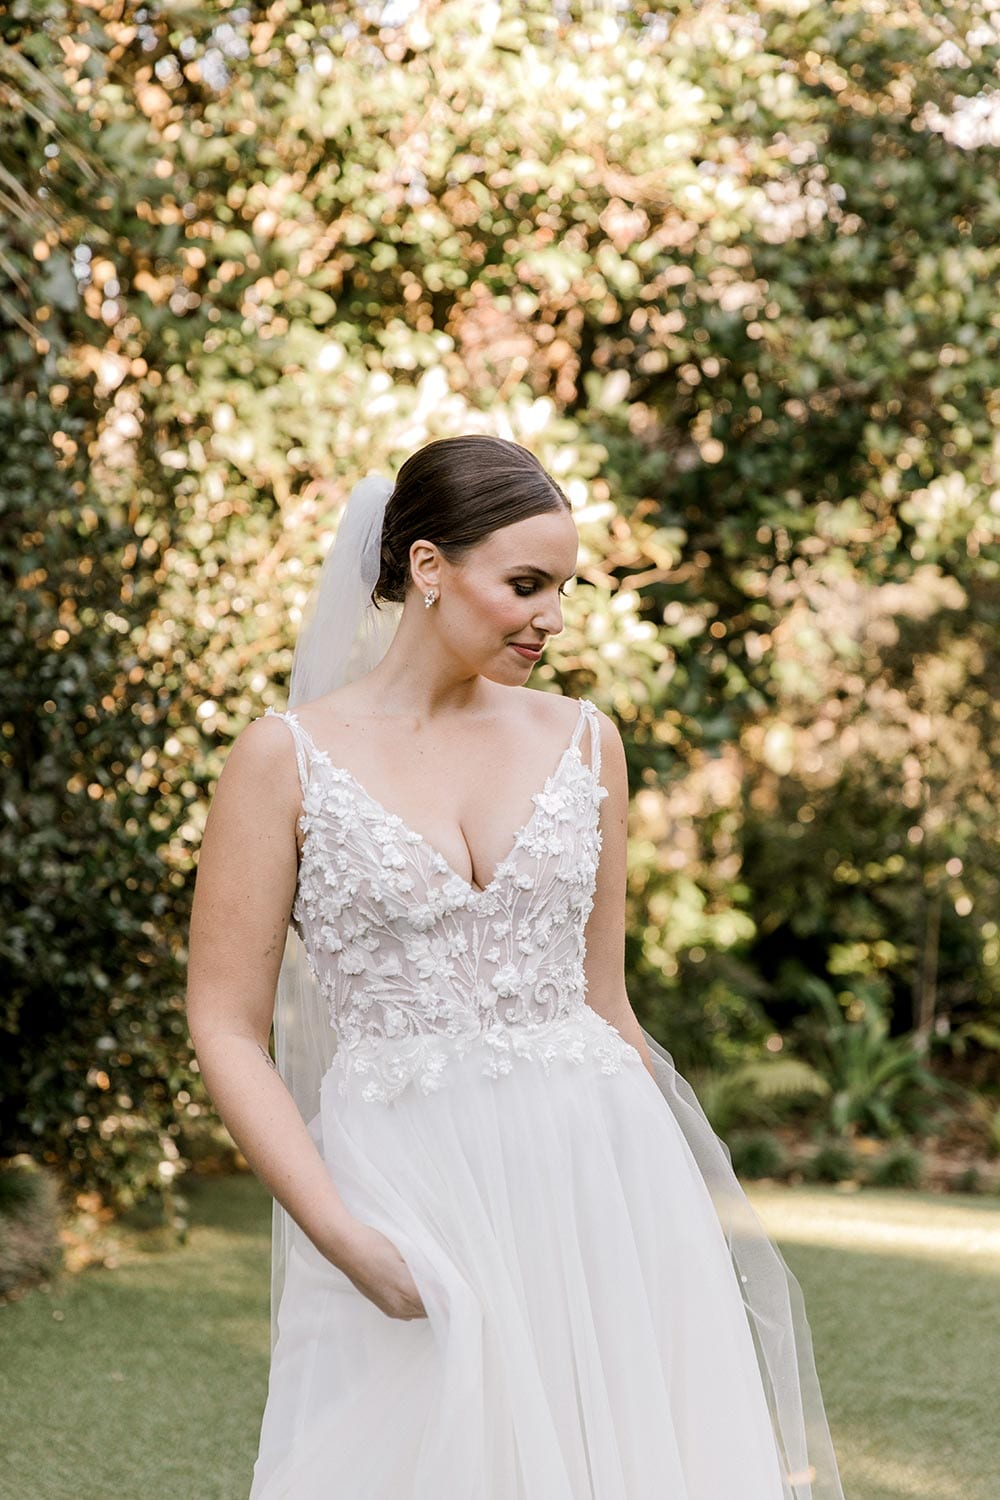 Serena Wedding Gown from Vinka Design - Classic & feminine wedding gown. Deep V-neckline semi-sheer structured bodice appliqued with flowers & leaves. Dreamy layered soft tulle skirt with side-split. Close up of top half showing bodice detail. Photograph in landscaped gardens.